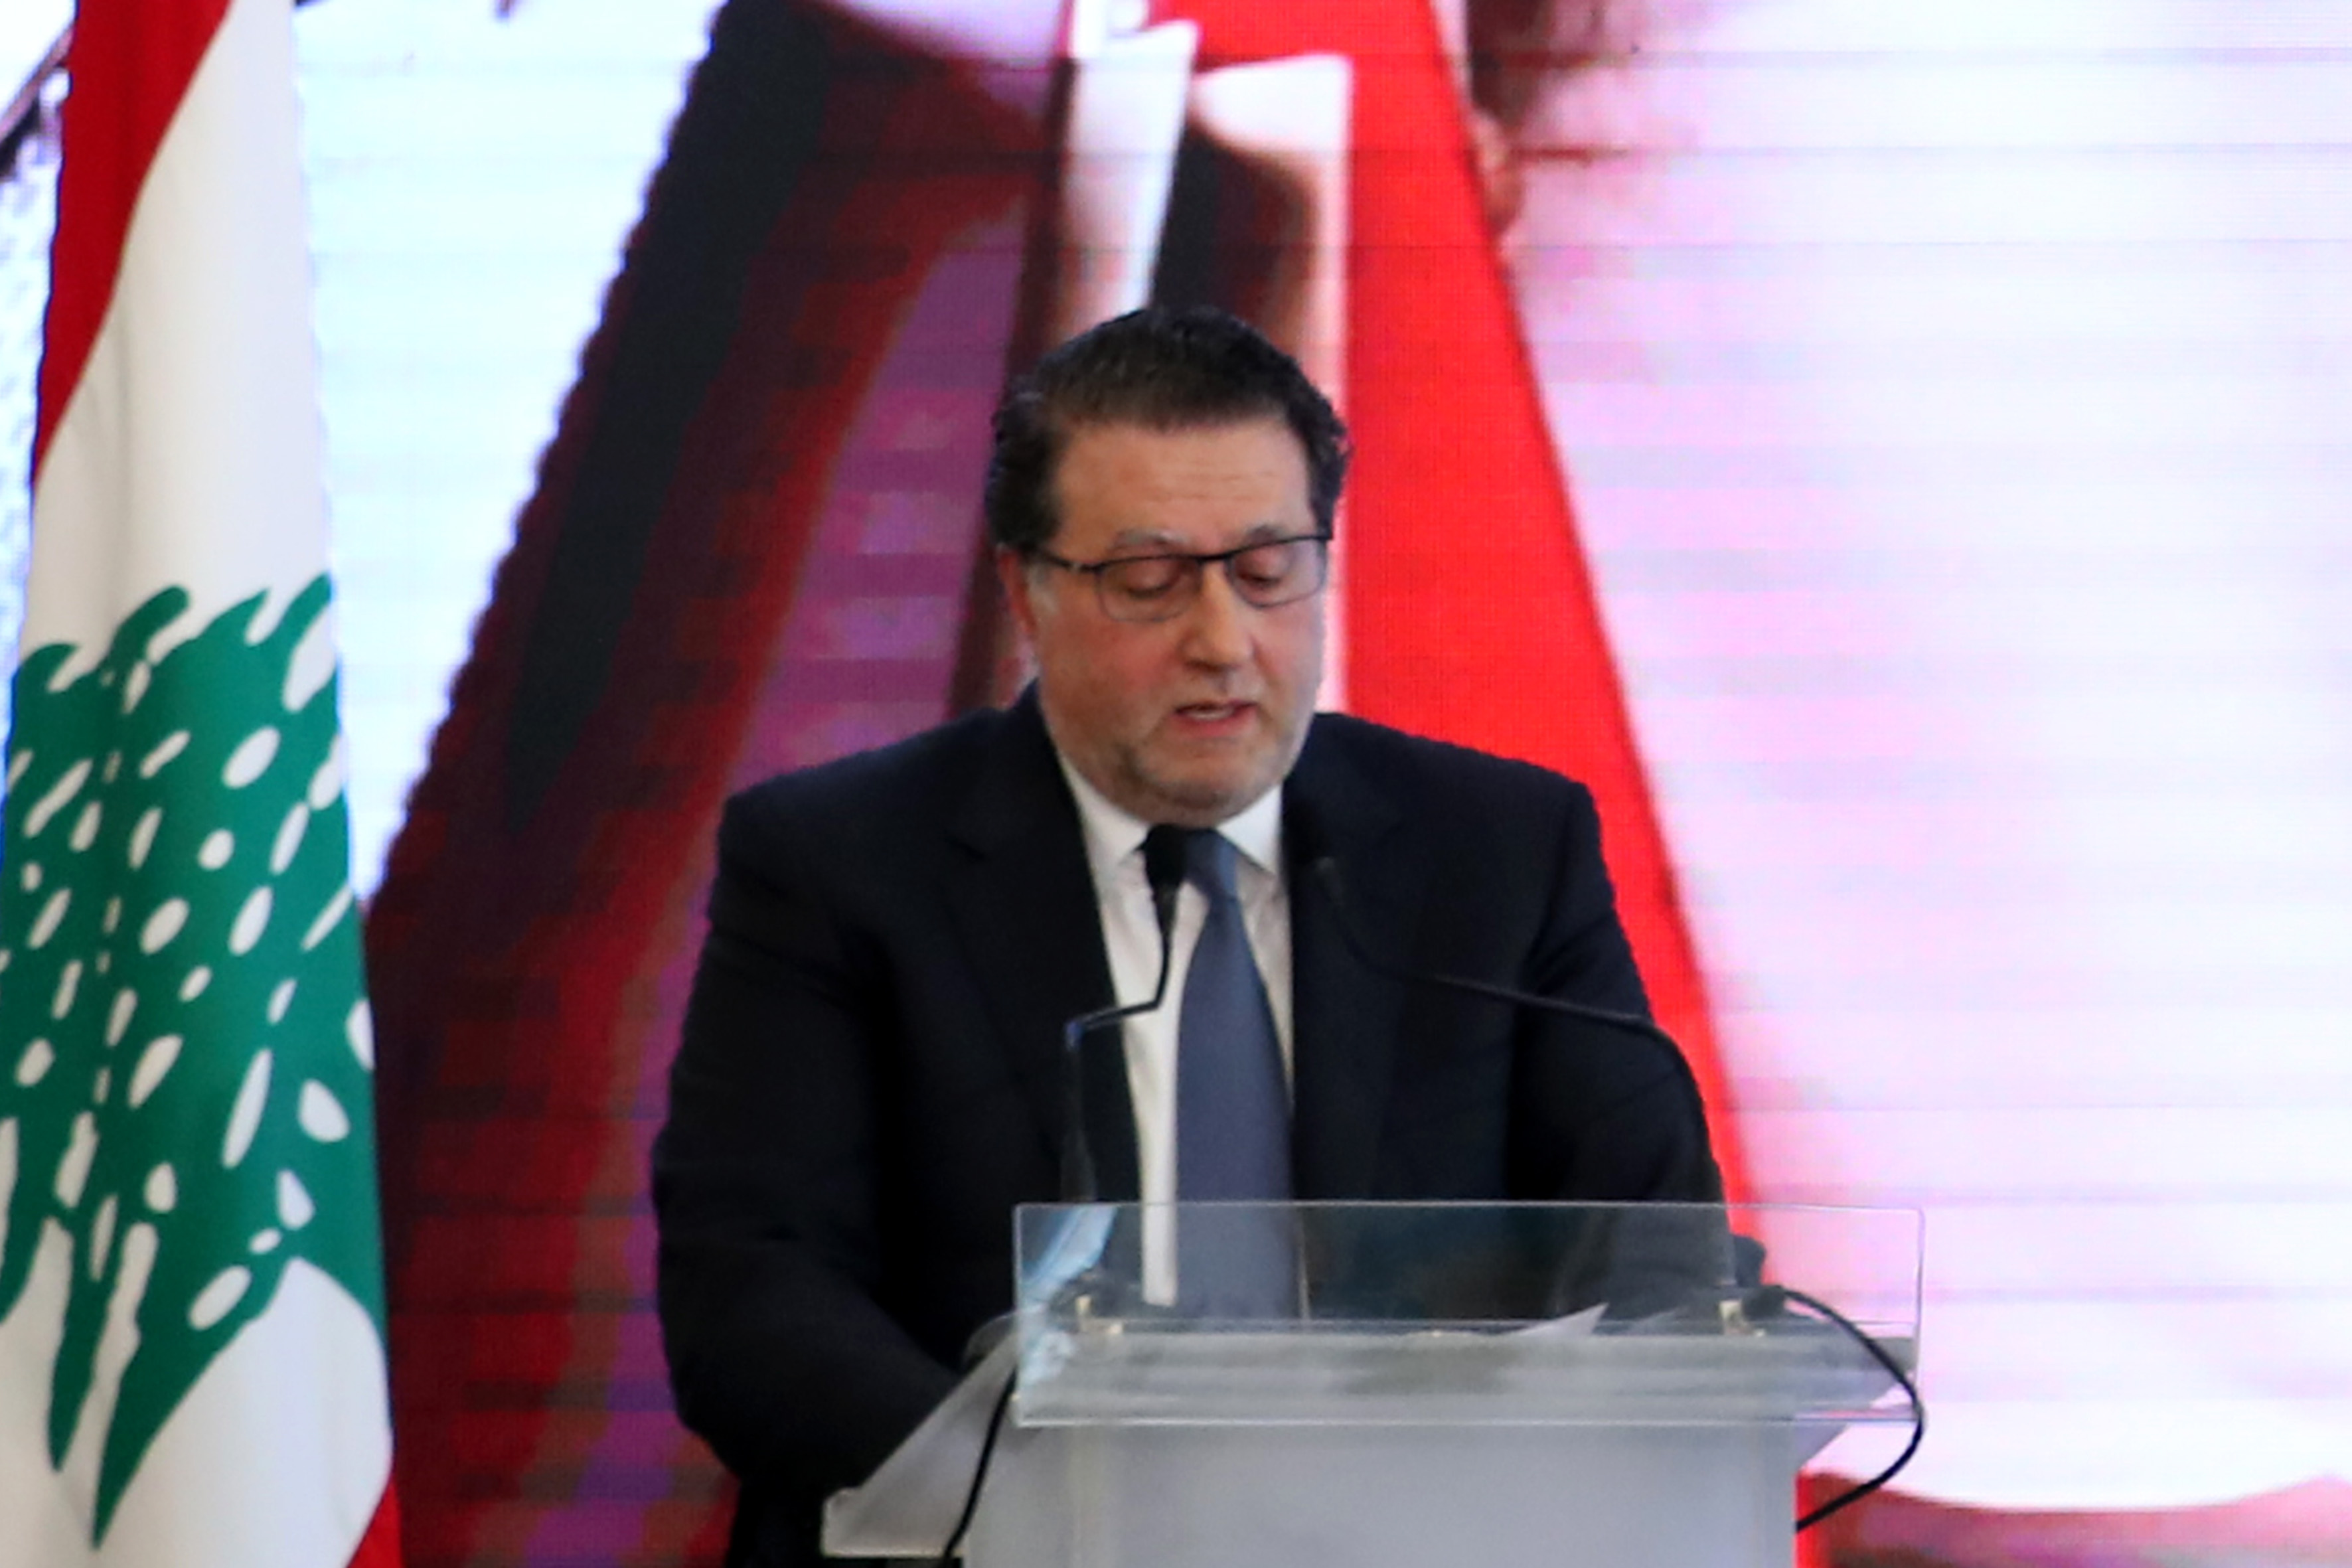 4 - Launch Of The National Campaign To Boost The Lebanese Economy 6